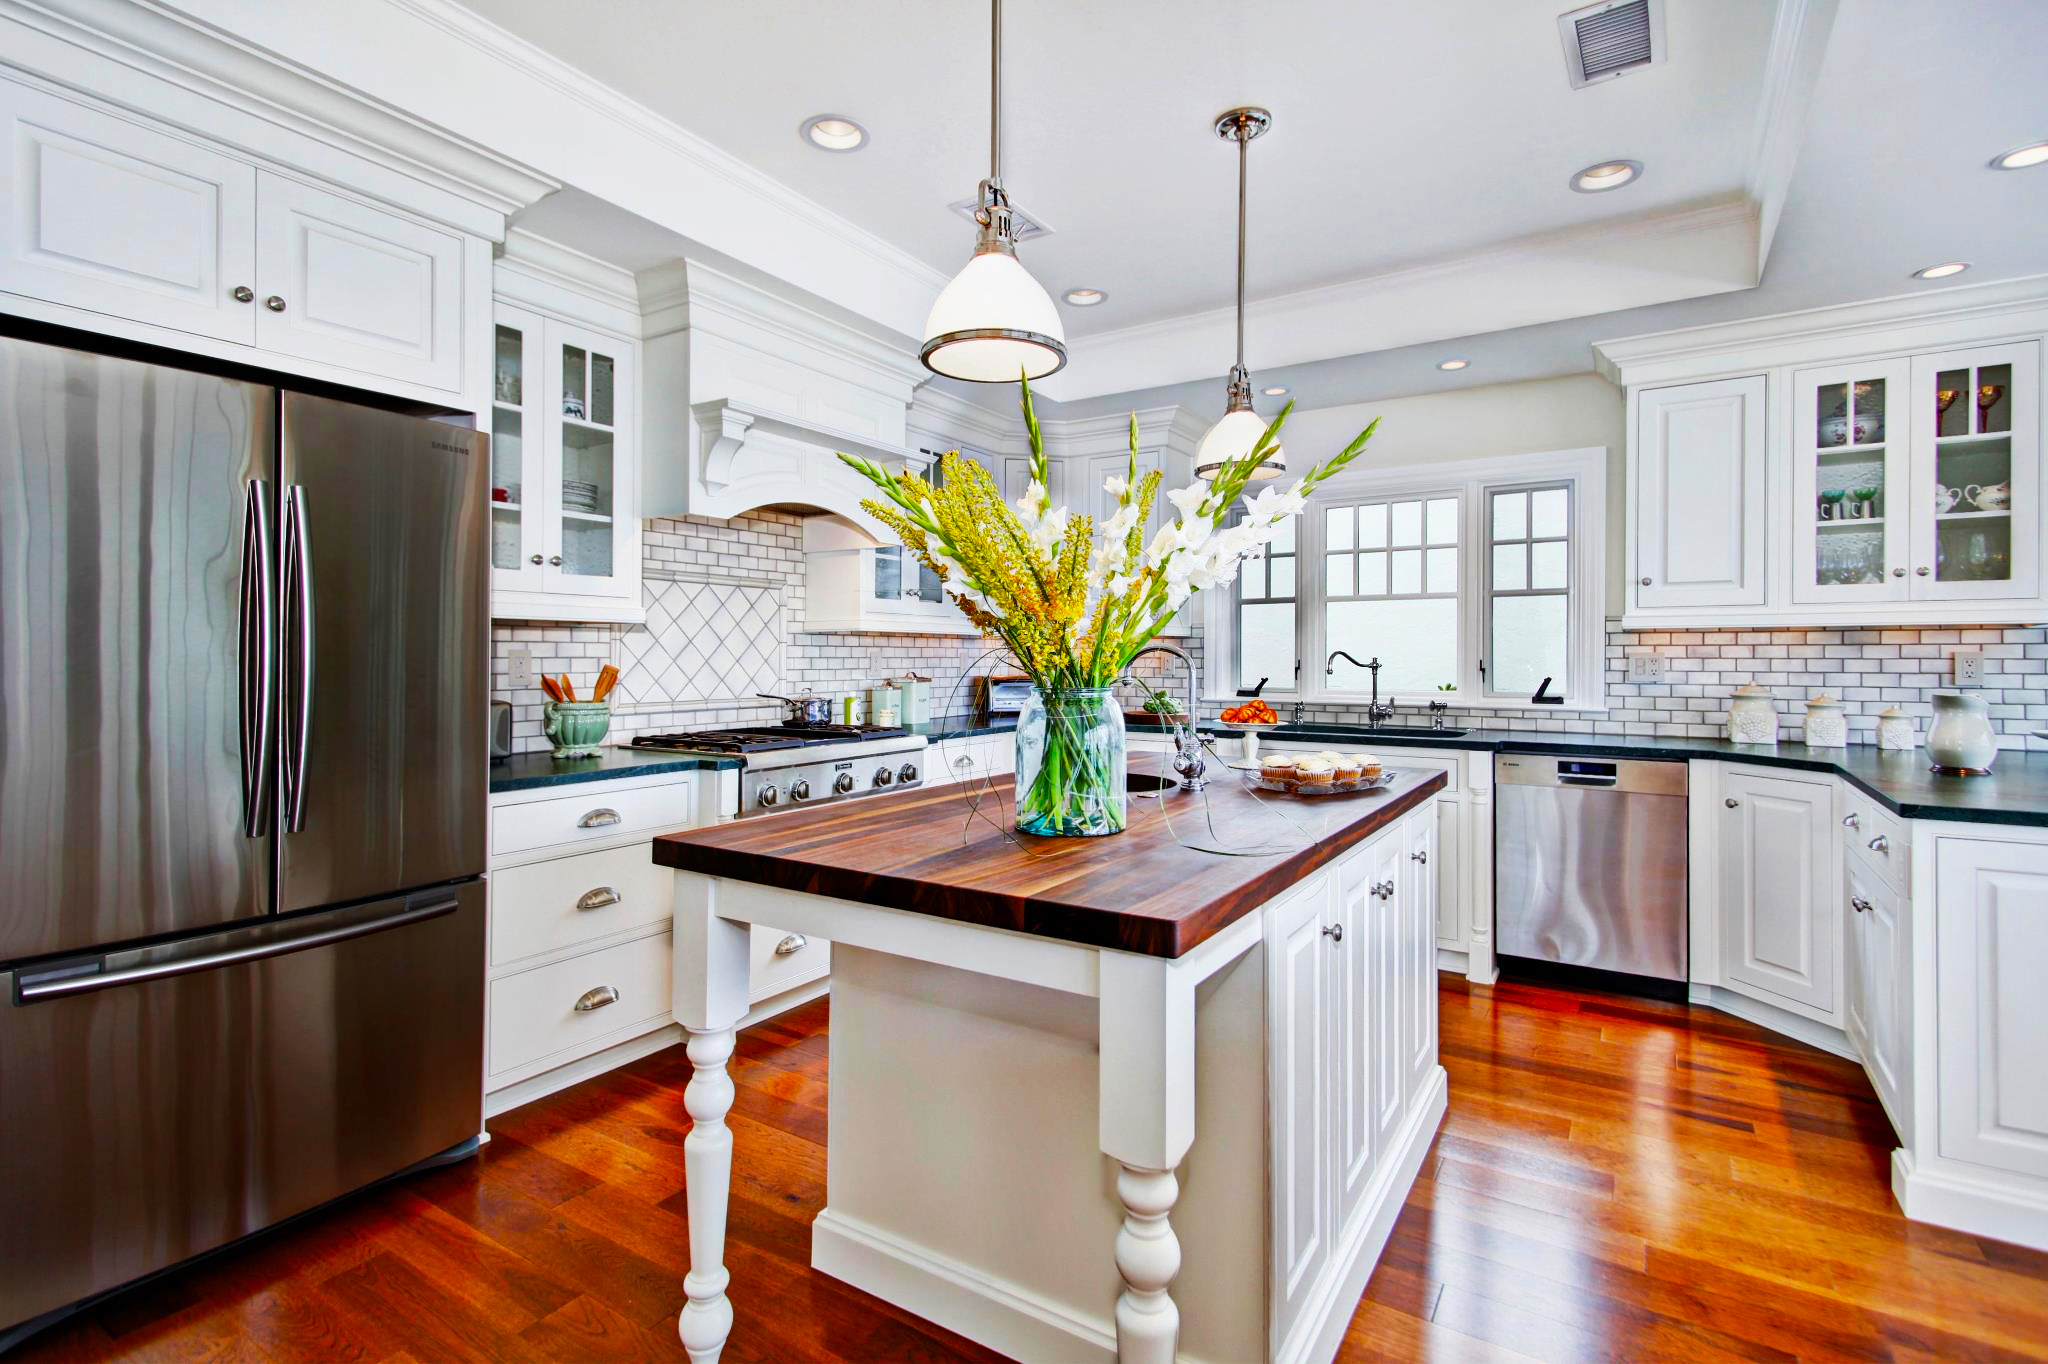 custom-kitchen-cabinets-doors-refacing-with-white-custom-kitchen-cabinets-and-pendant-light-kitchen-decor-also-white-oak-kitchen-island